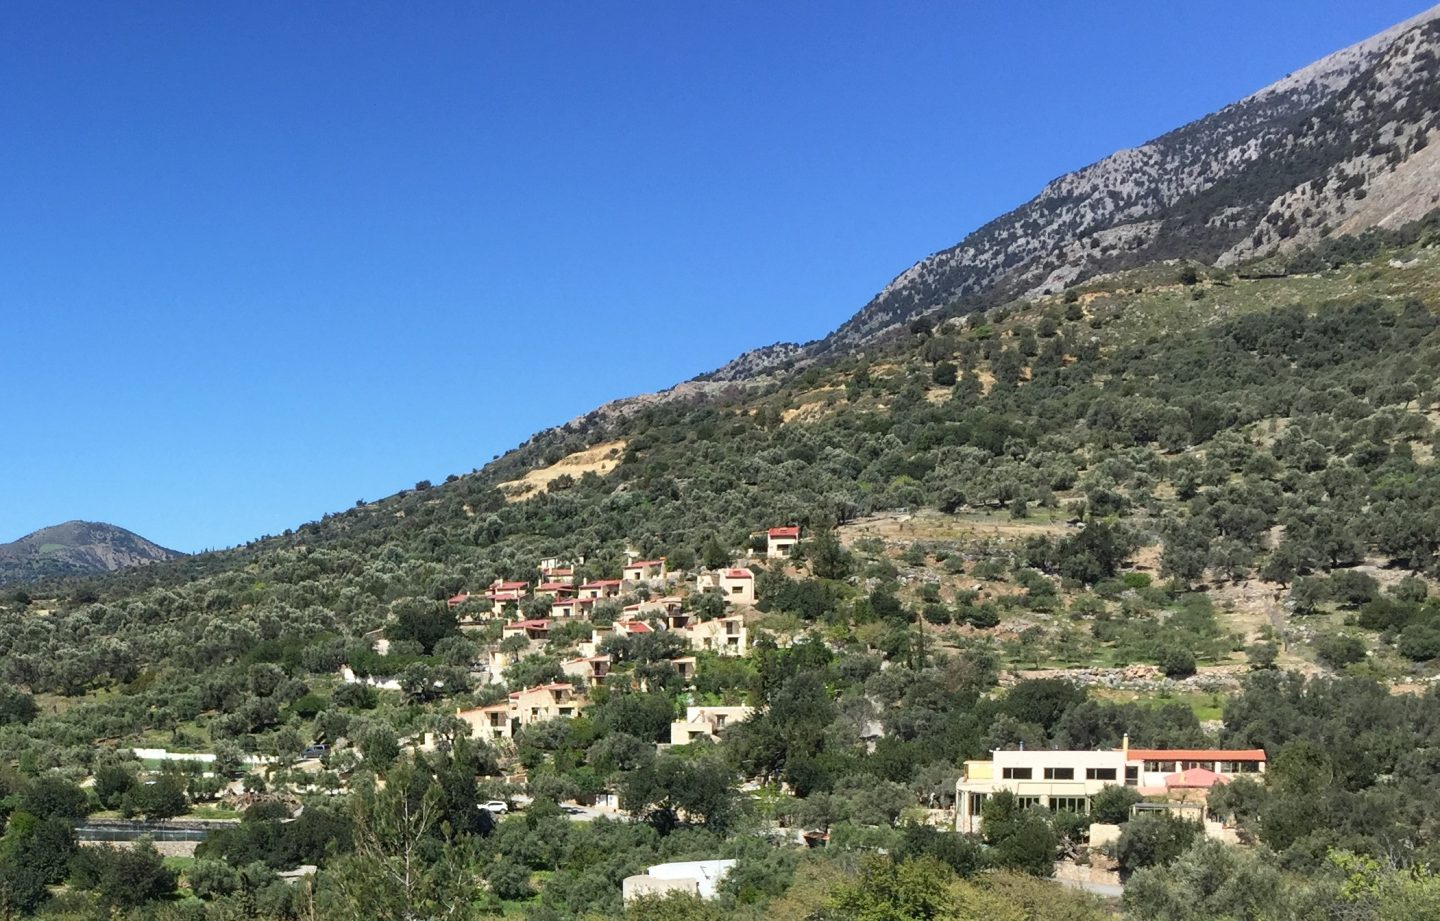 The cottages of Eleonas in the foothills of Mt Psiloritis, Crete